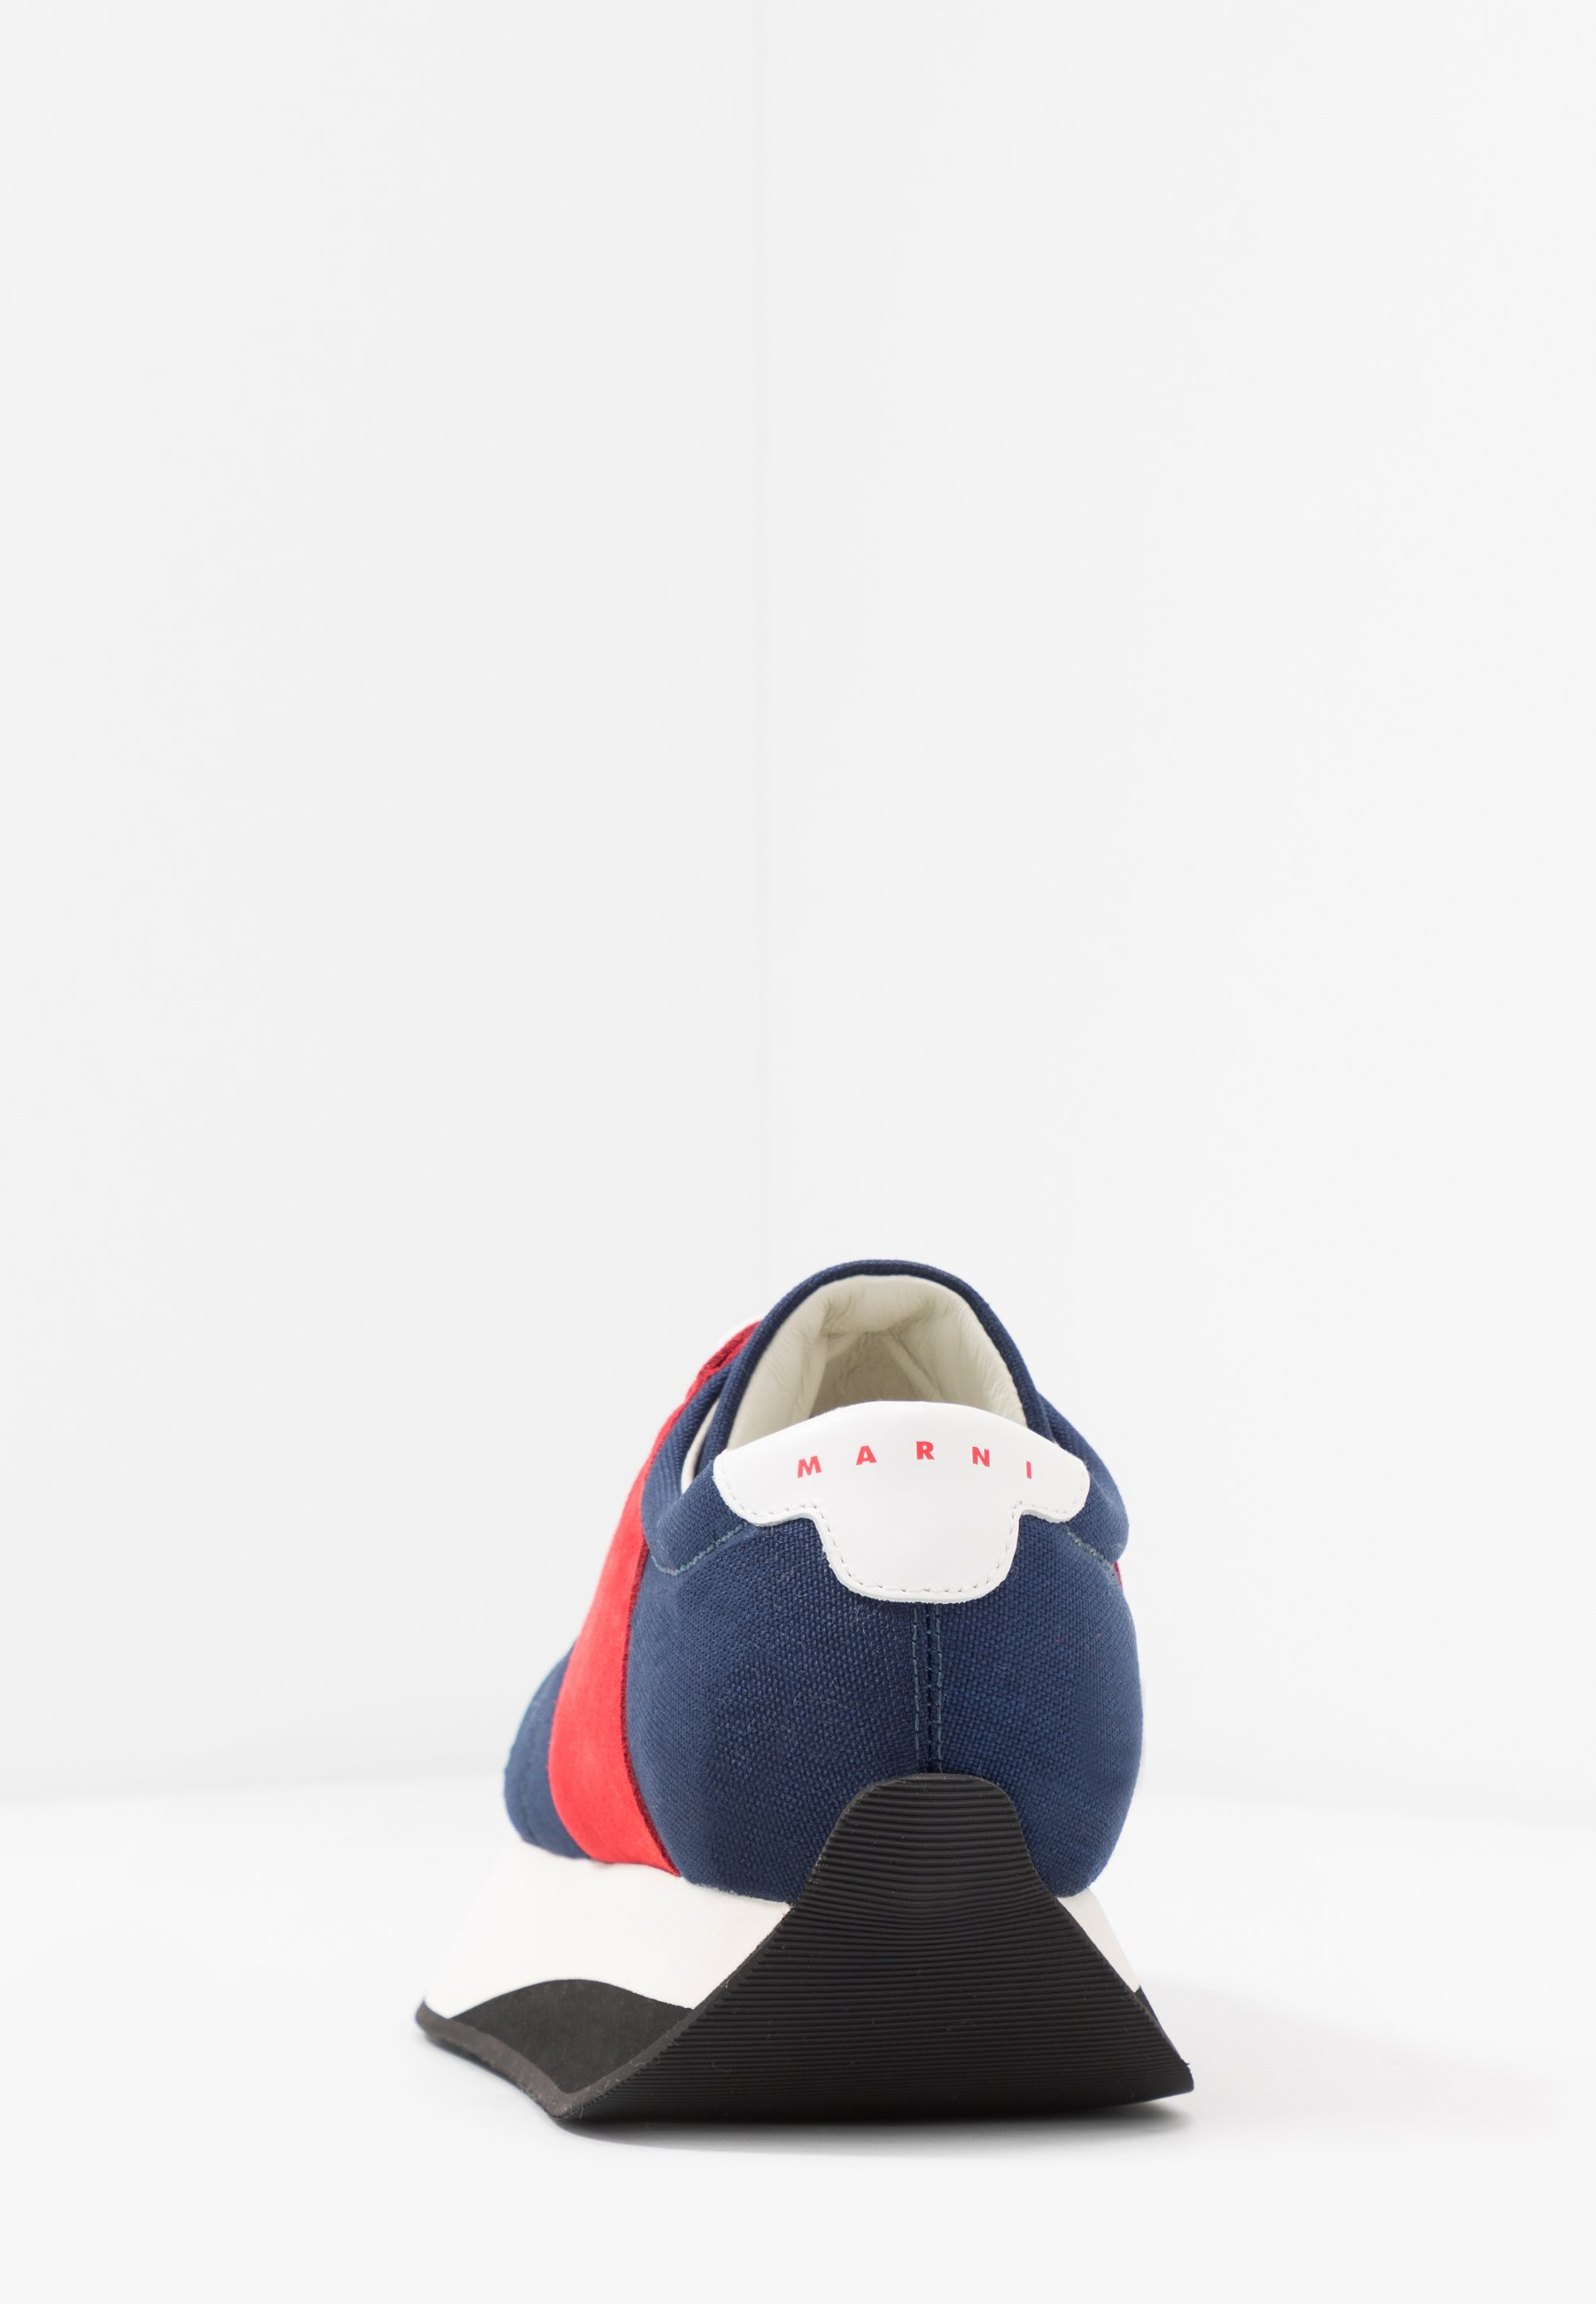 Marni Sneakers - Red/blue